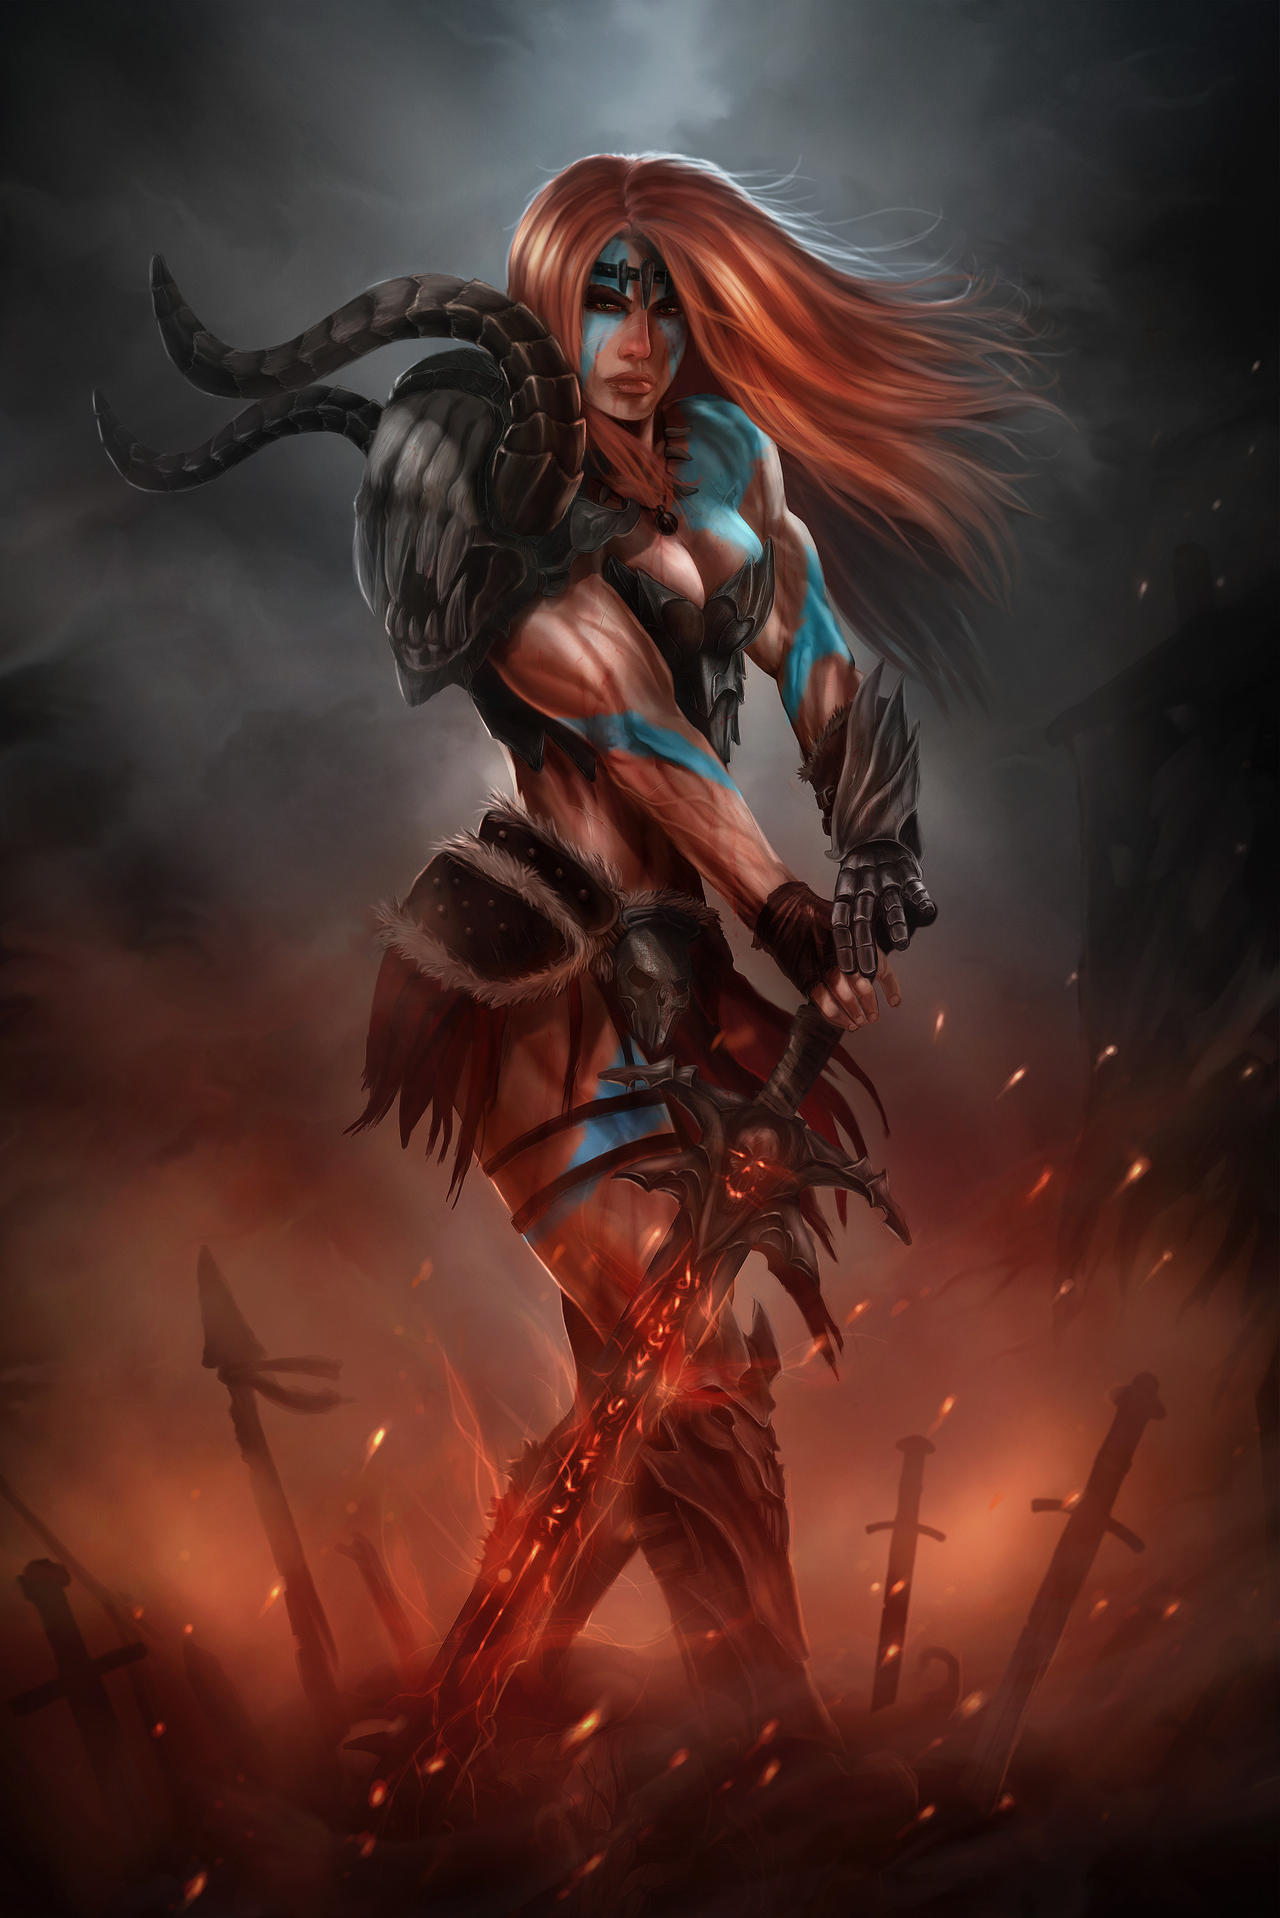 1000  images about diablo 3 on Pinterest | Barbarian woman, Google ...